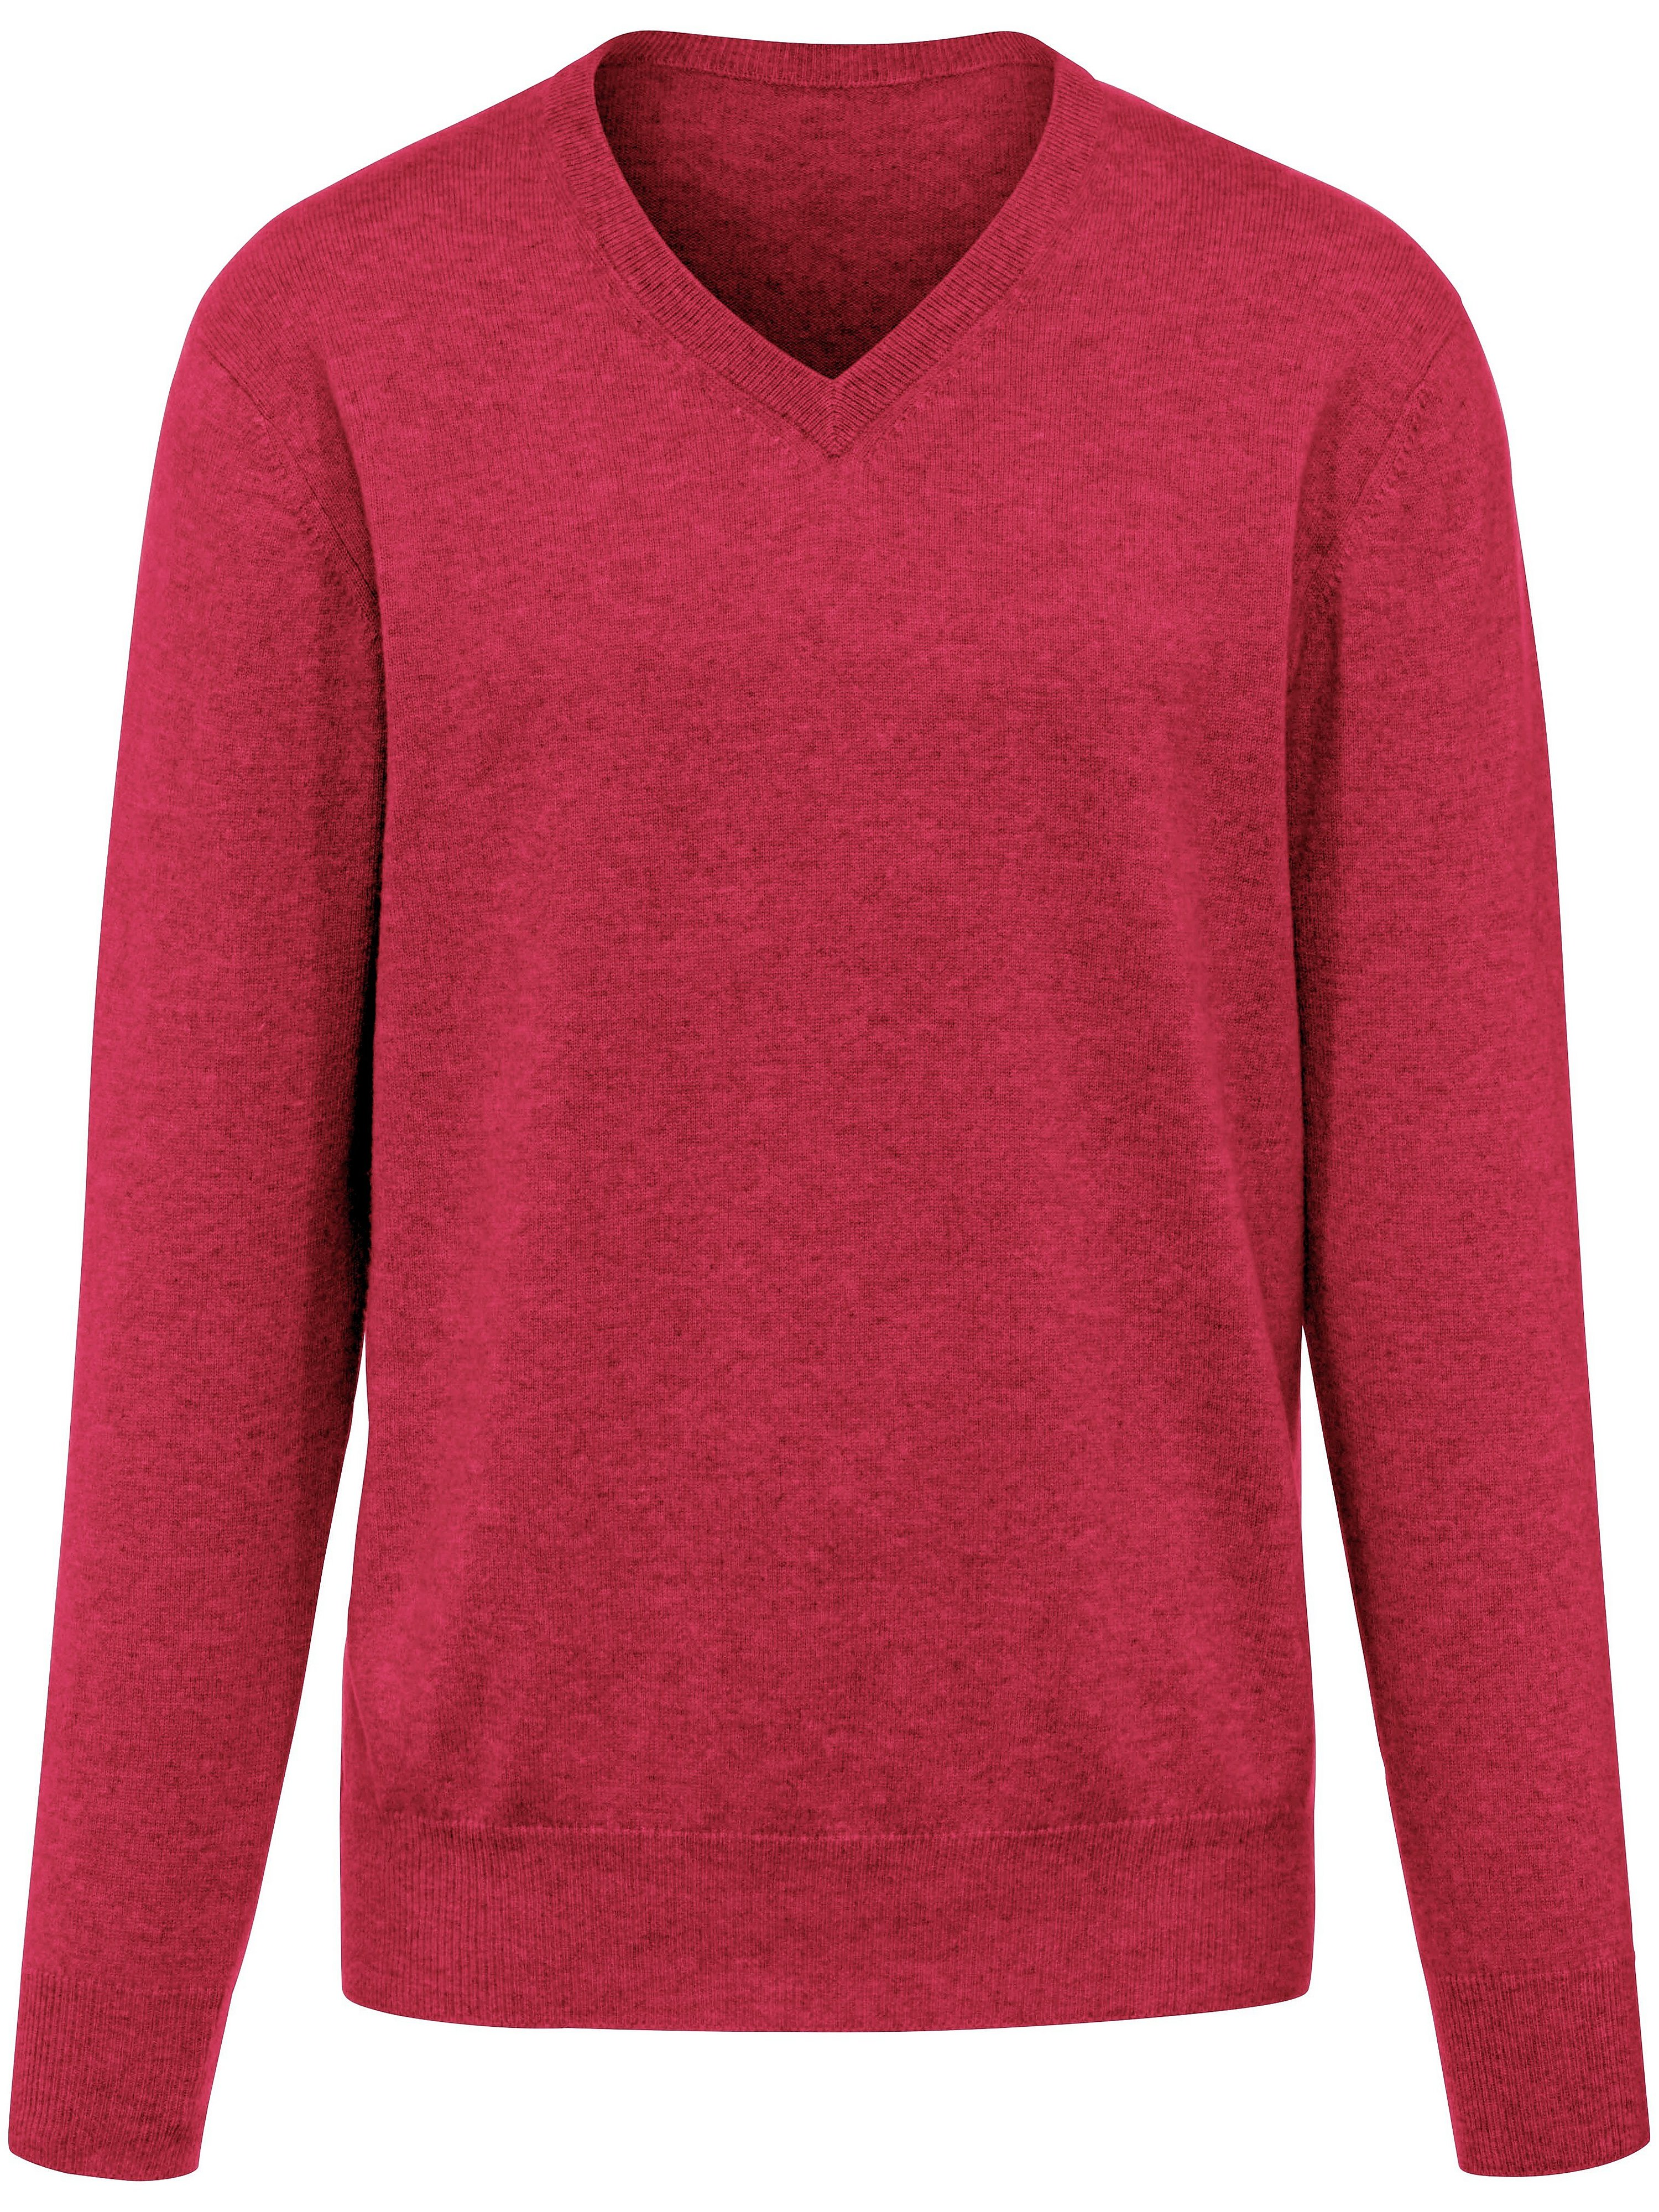 Le pull col V 100% cachemire Cashmere rouge - Peter Hahn - Modalova